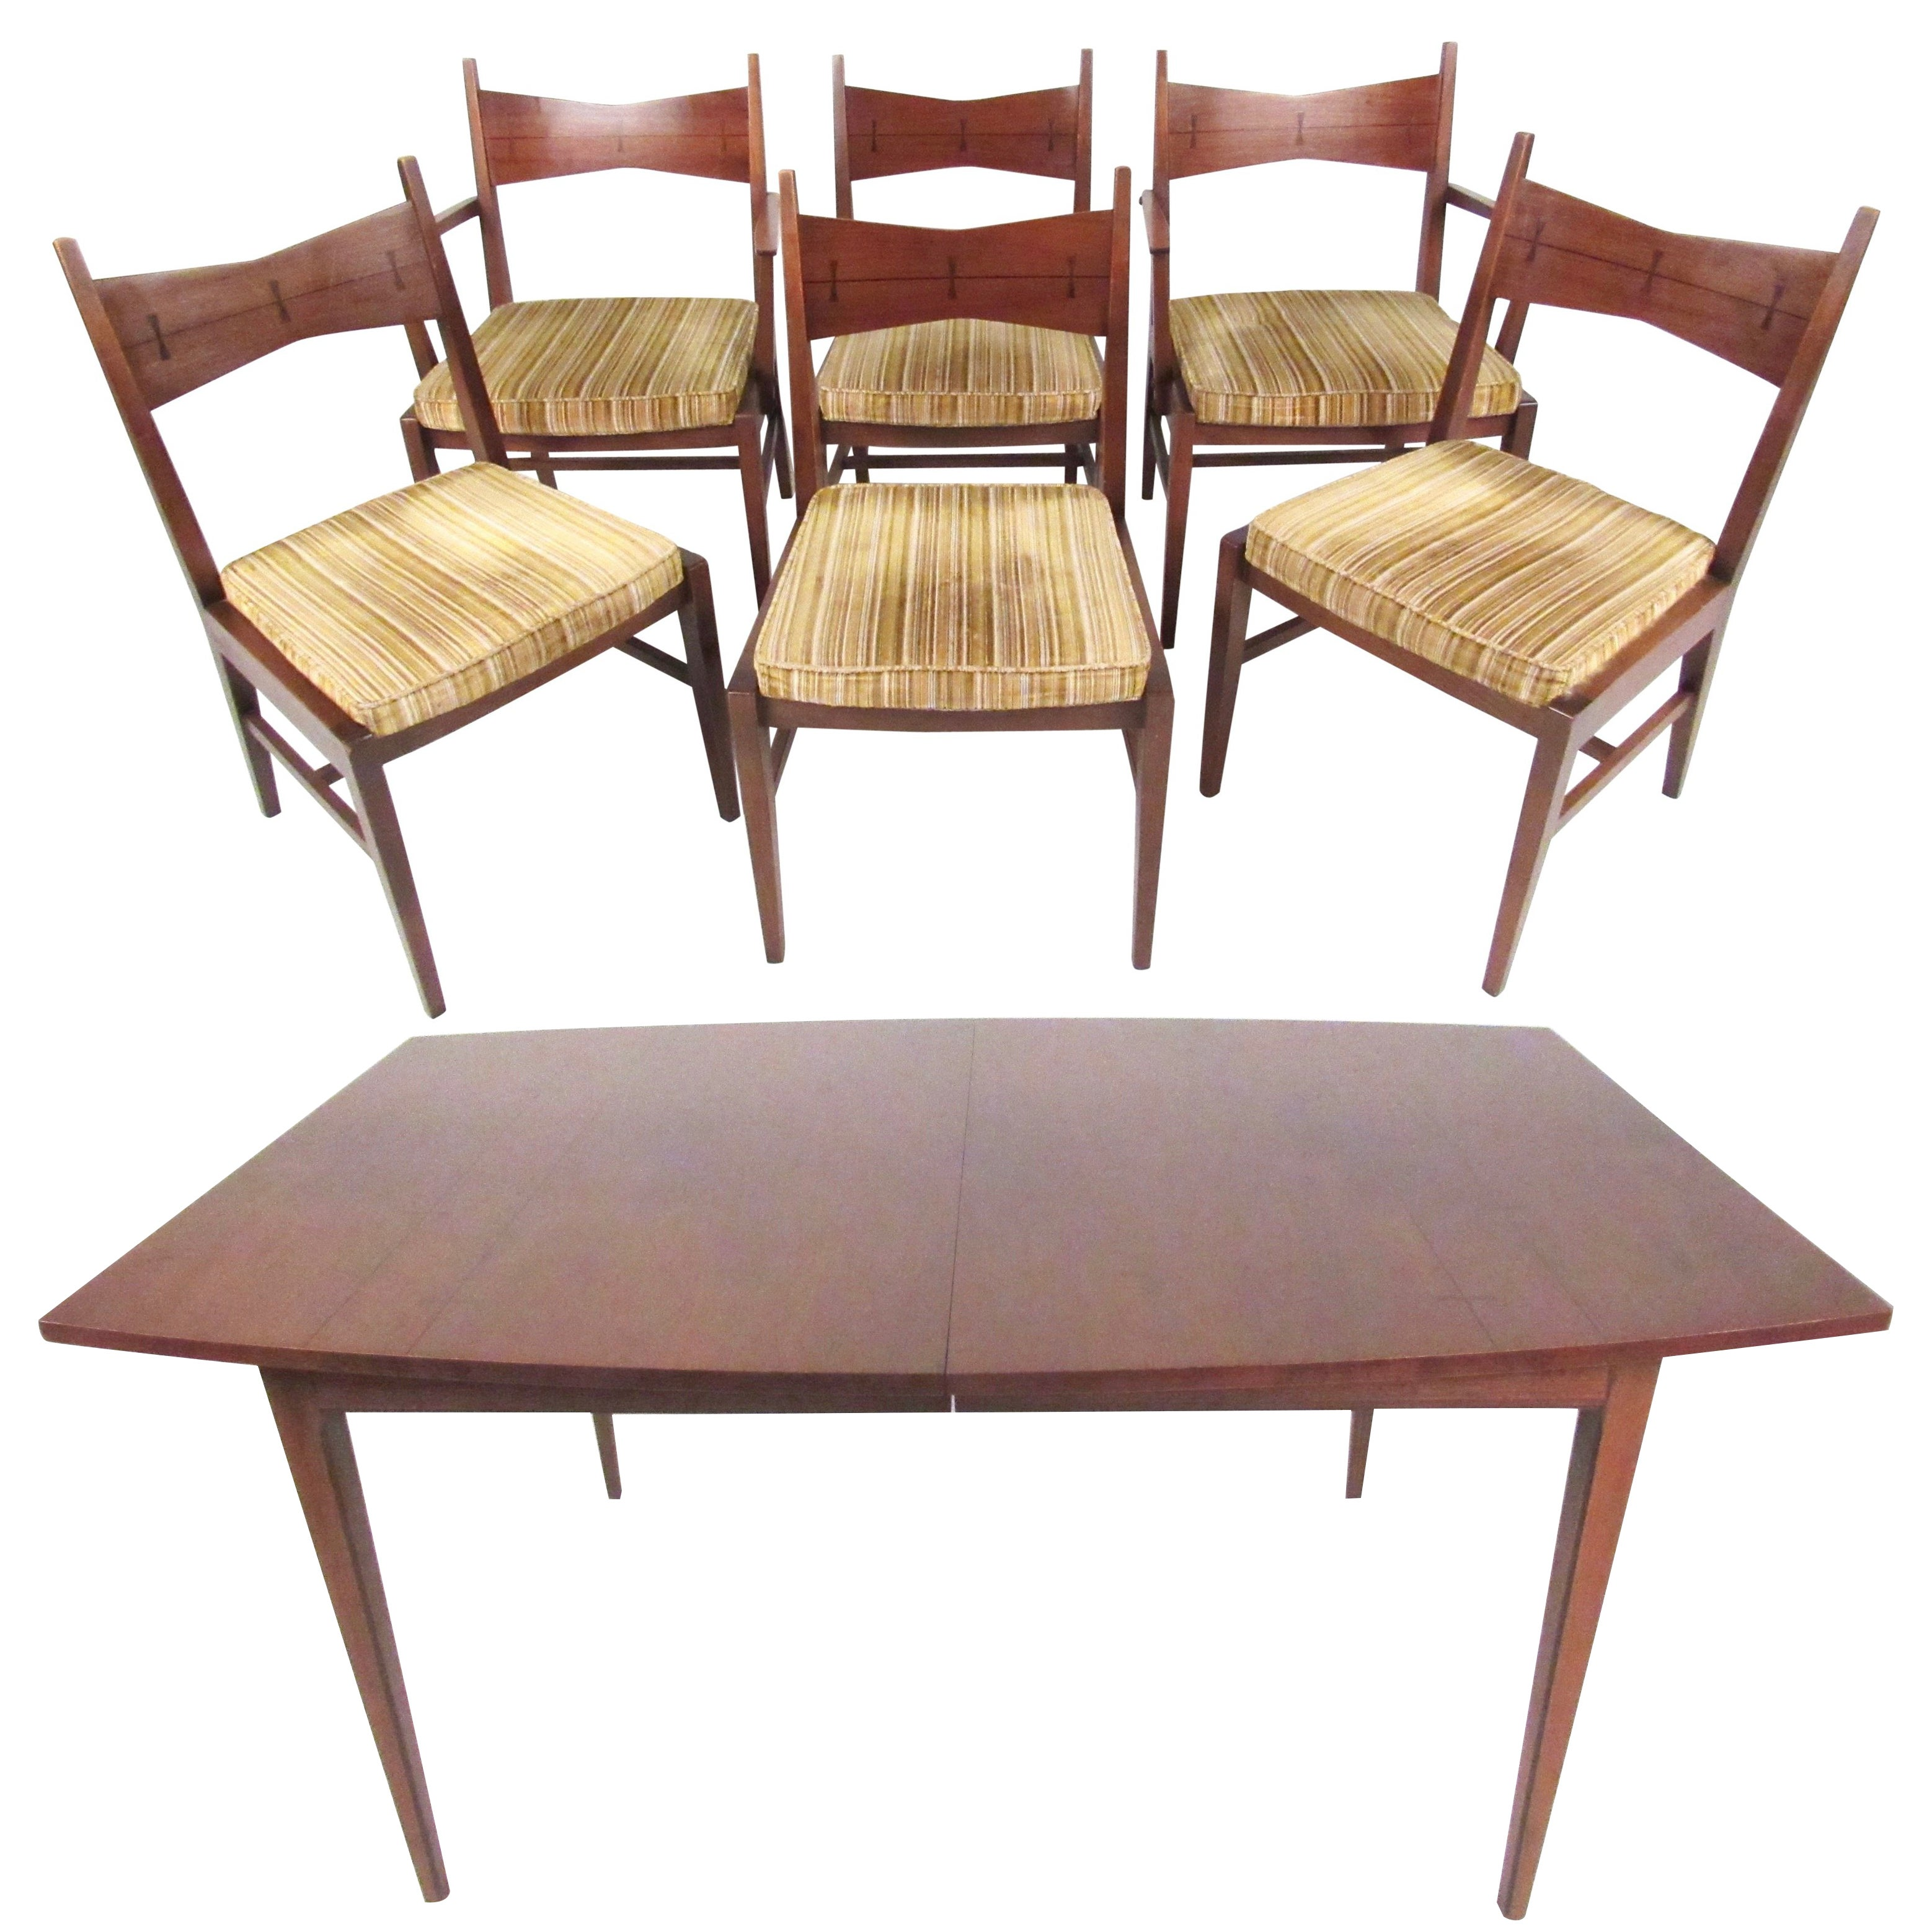 Modern Table And Chairs Mid Century Modern Dining Table And Chairs By Lane